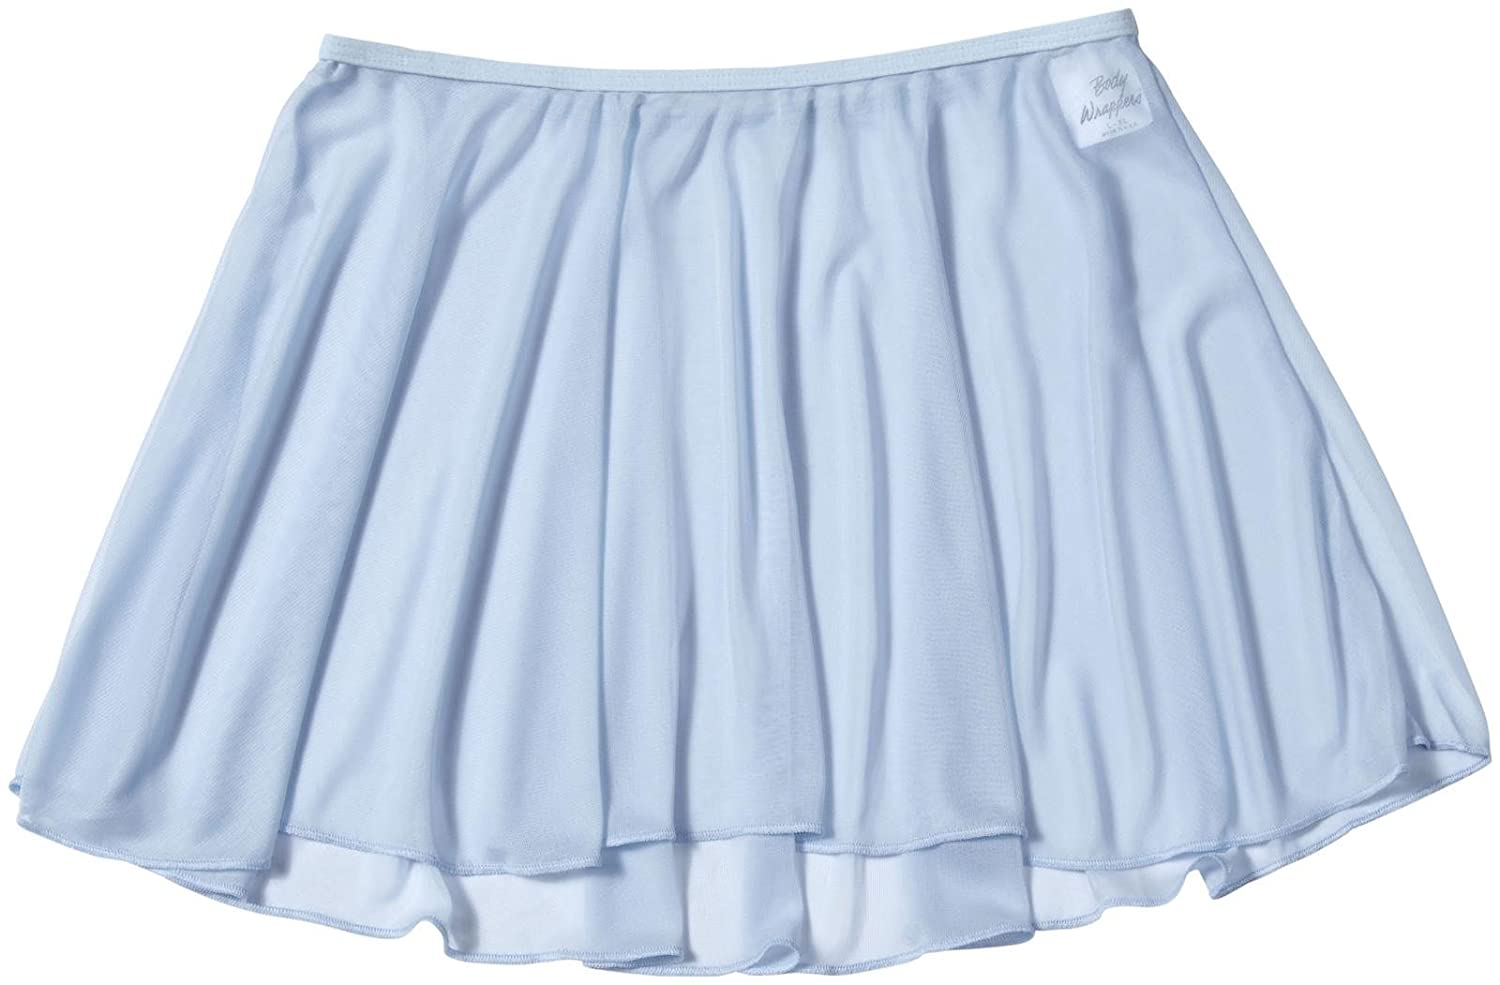 Body Wrappers Girls Chiffon Pull-On Dance Skirt (BW198)